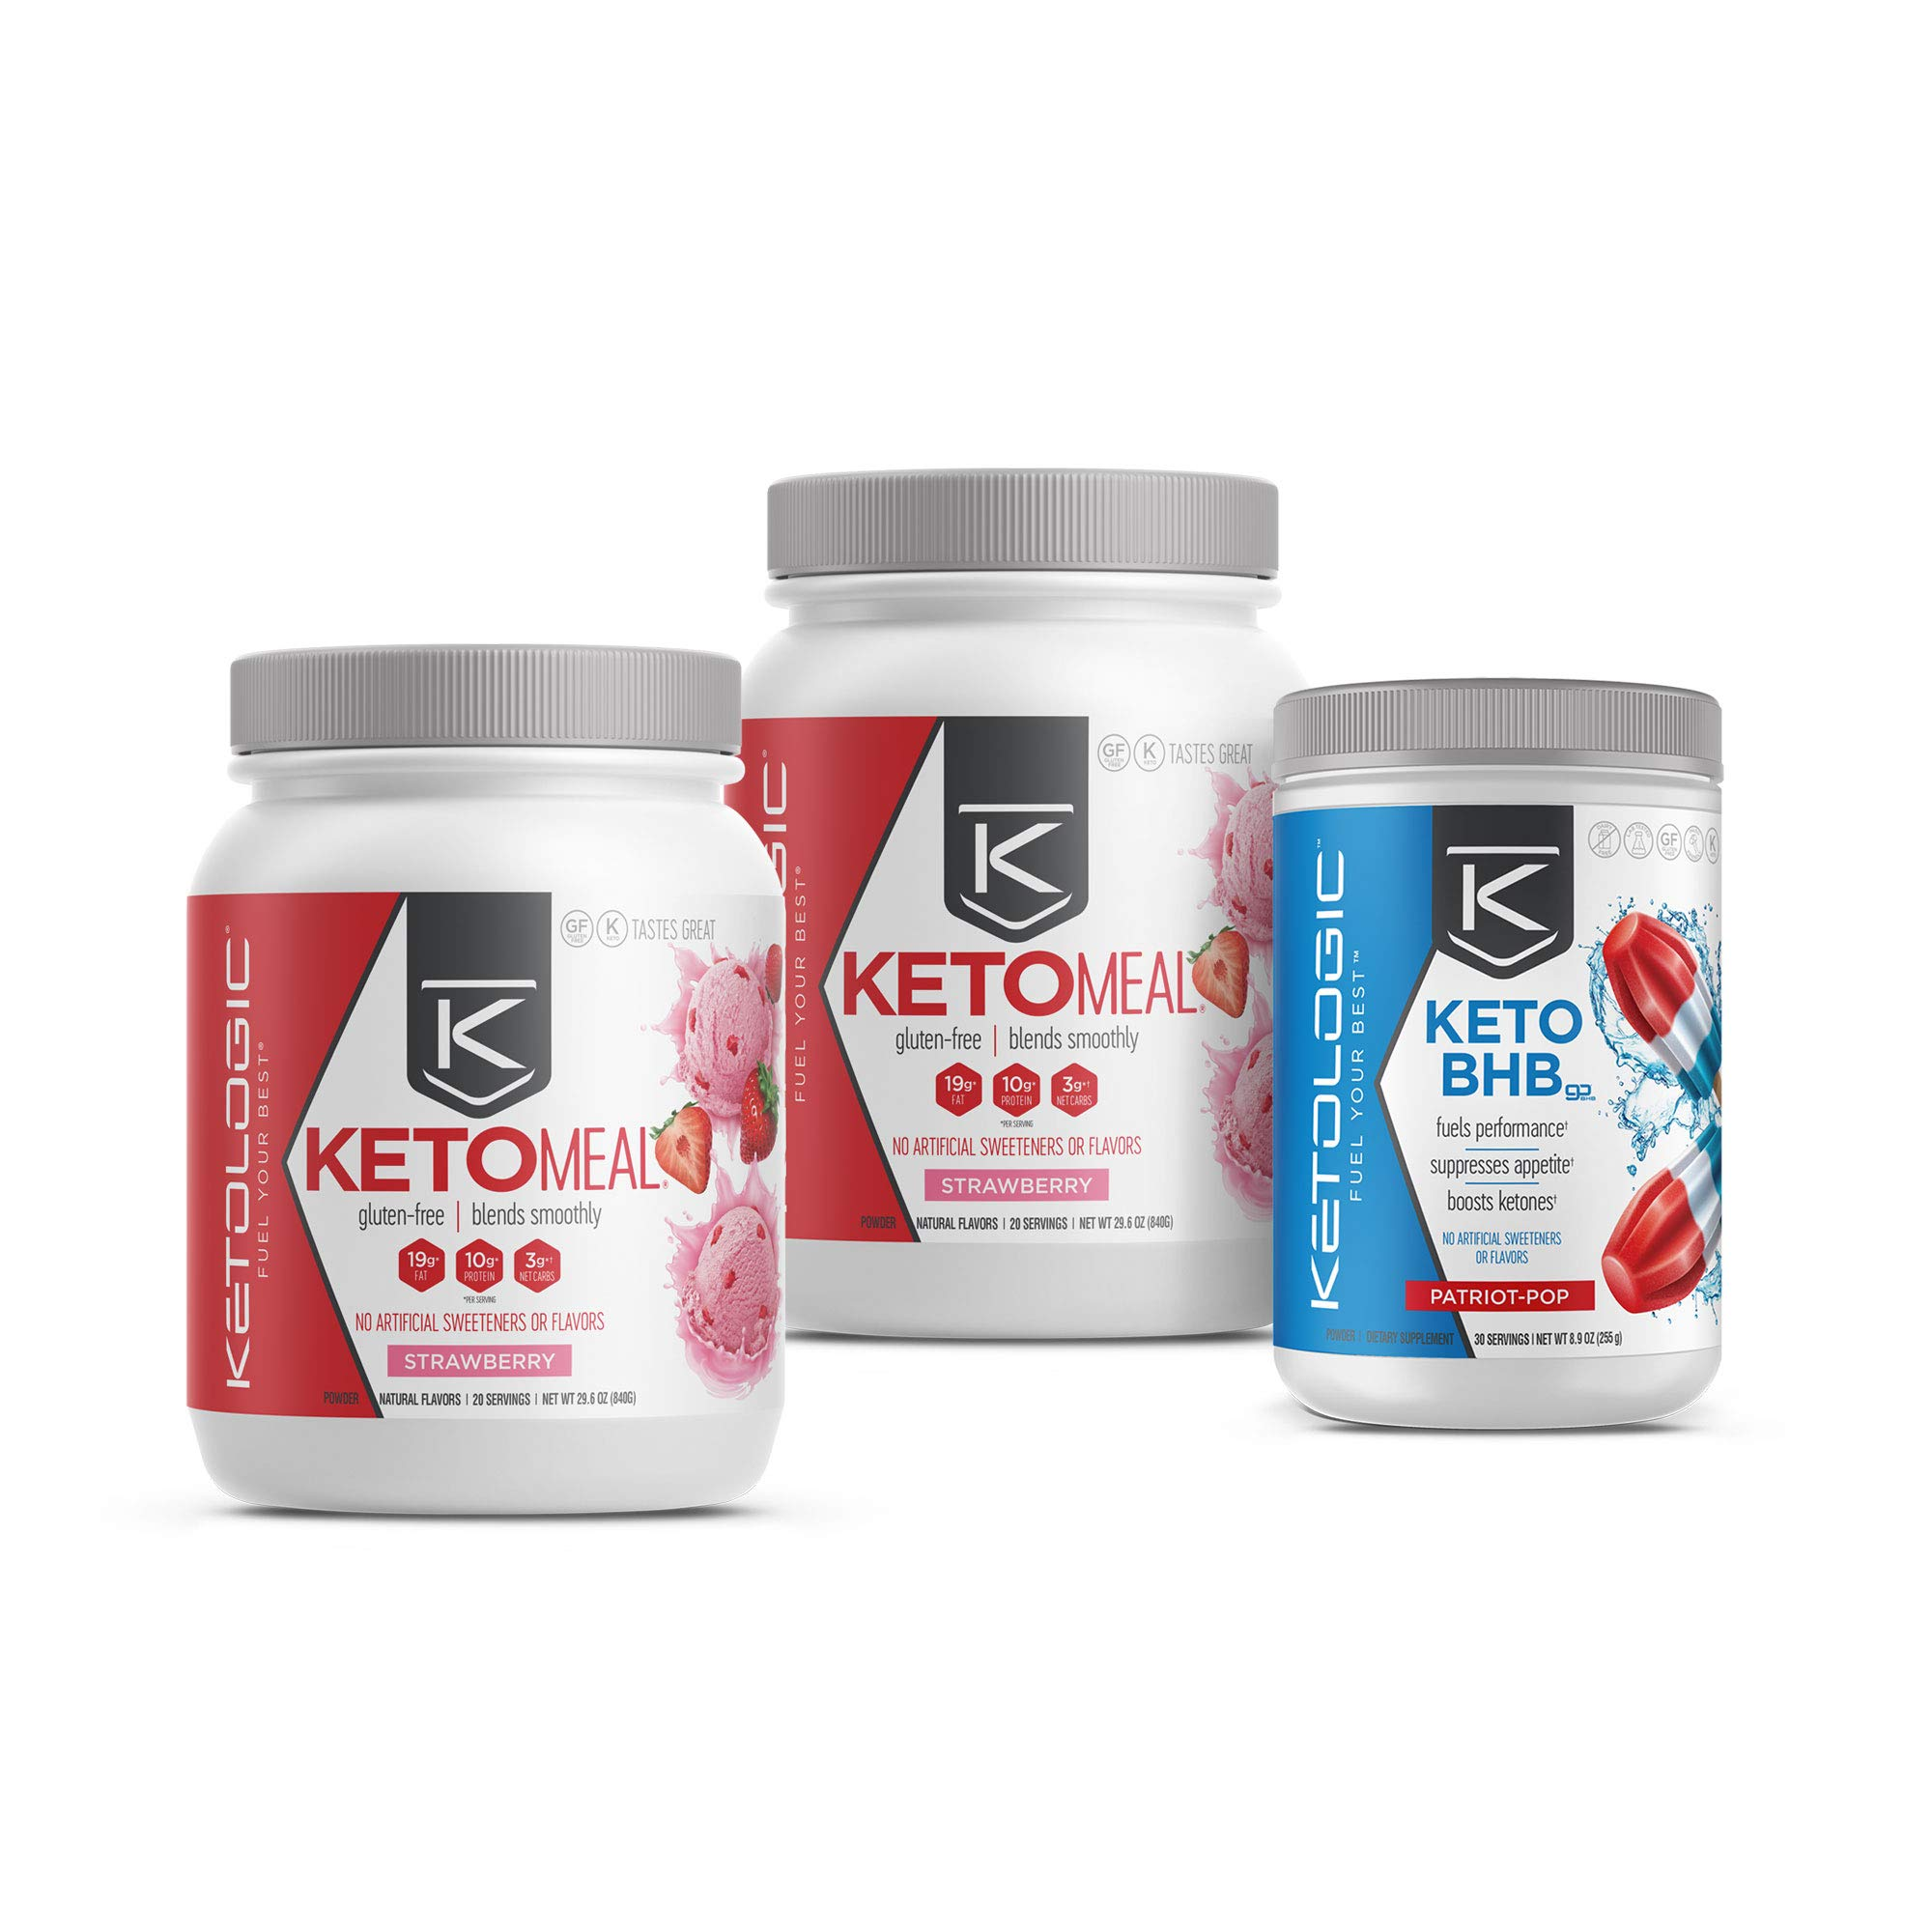 KetoLogic Keto 30 Challenge Bundle, 30-Day Supply   Includes 2 Meal Replacement Shakes with MCT [Strawberry] & 1 BHB Salt [Patriot Pop]   Suppresses Appetite, Promotes Weight Loss & Increases Energy by Ketologic